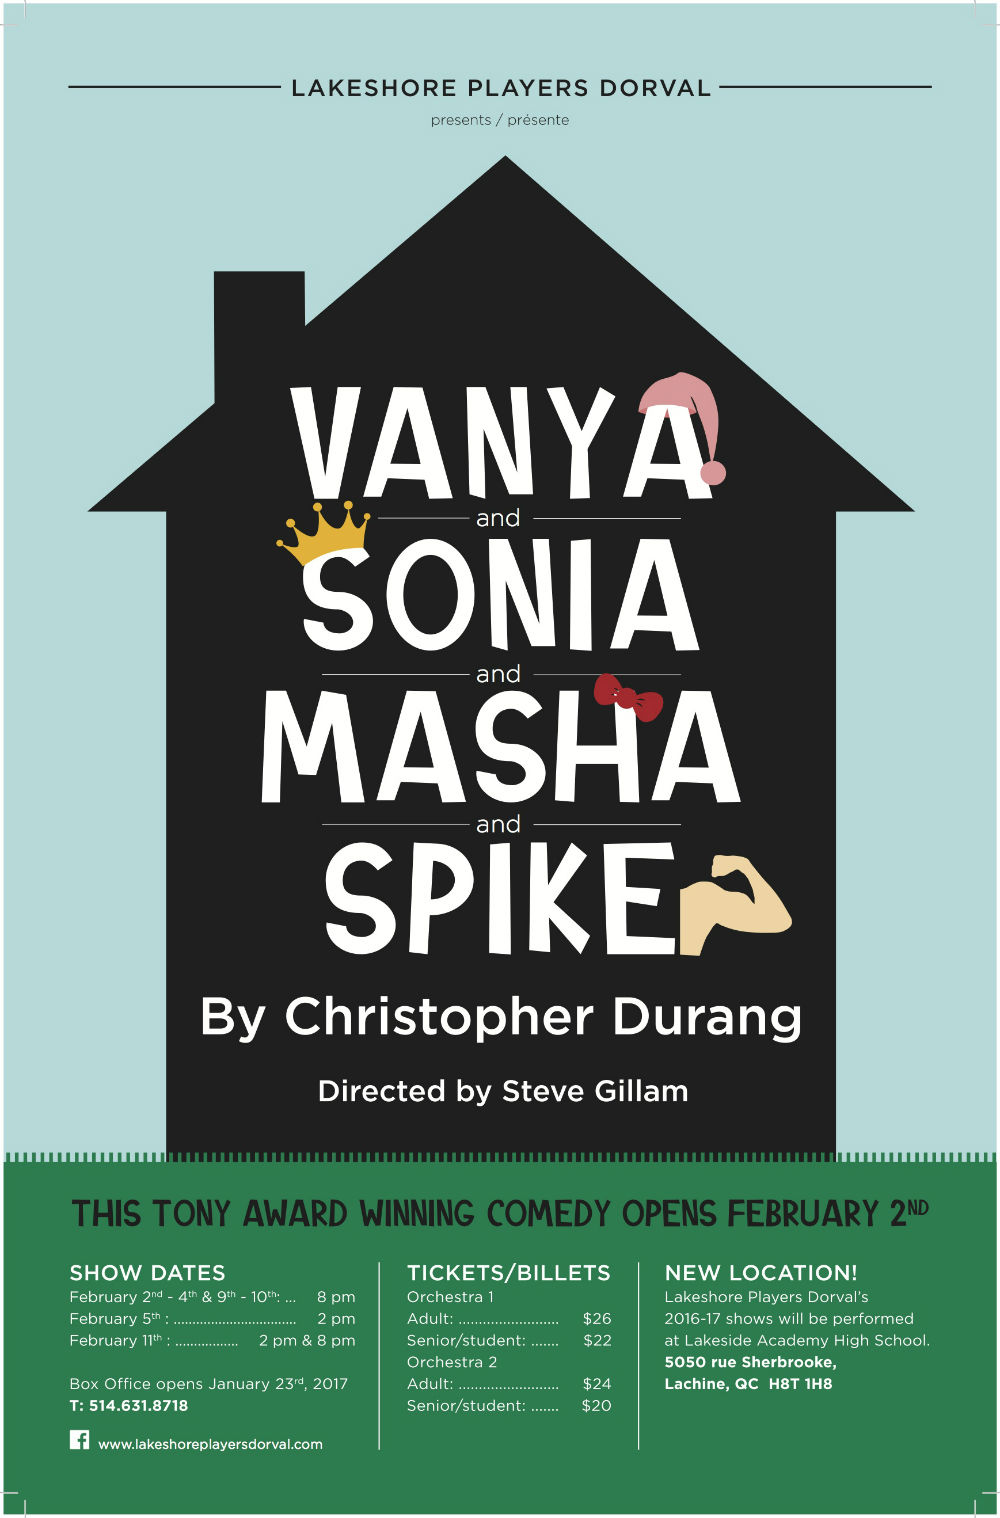 Lakeshore Players Dorval presents Vanya and Sonia and Masha and Spike